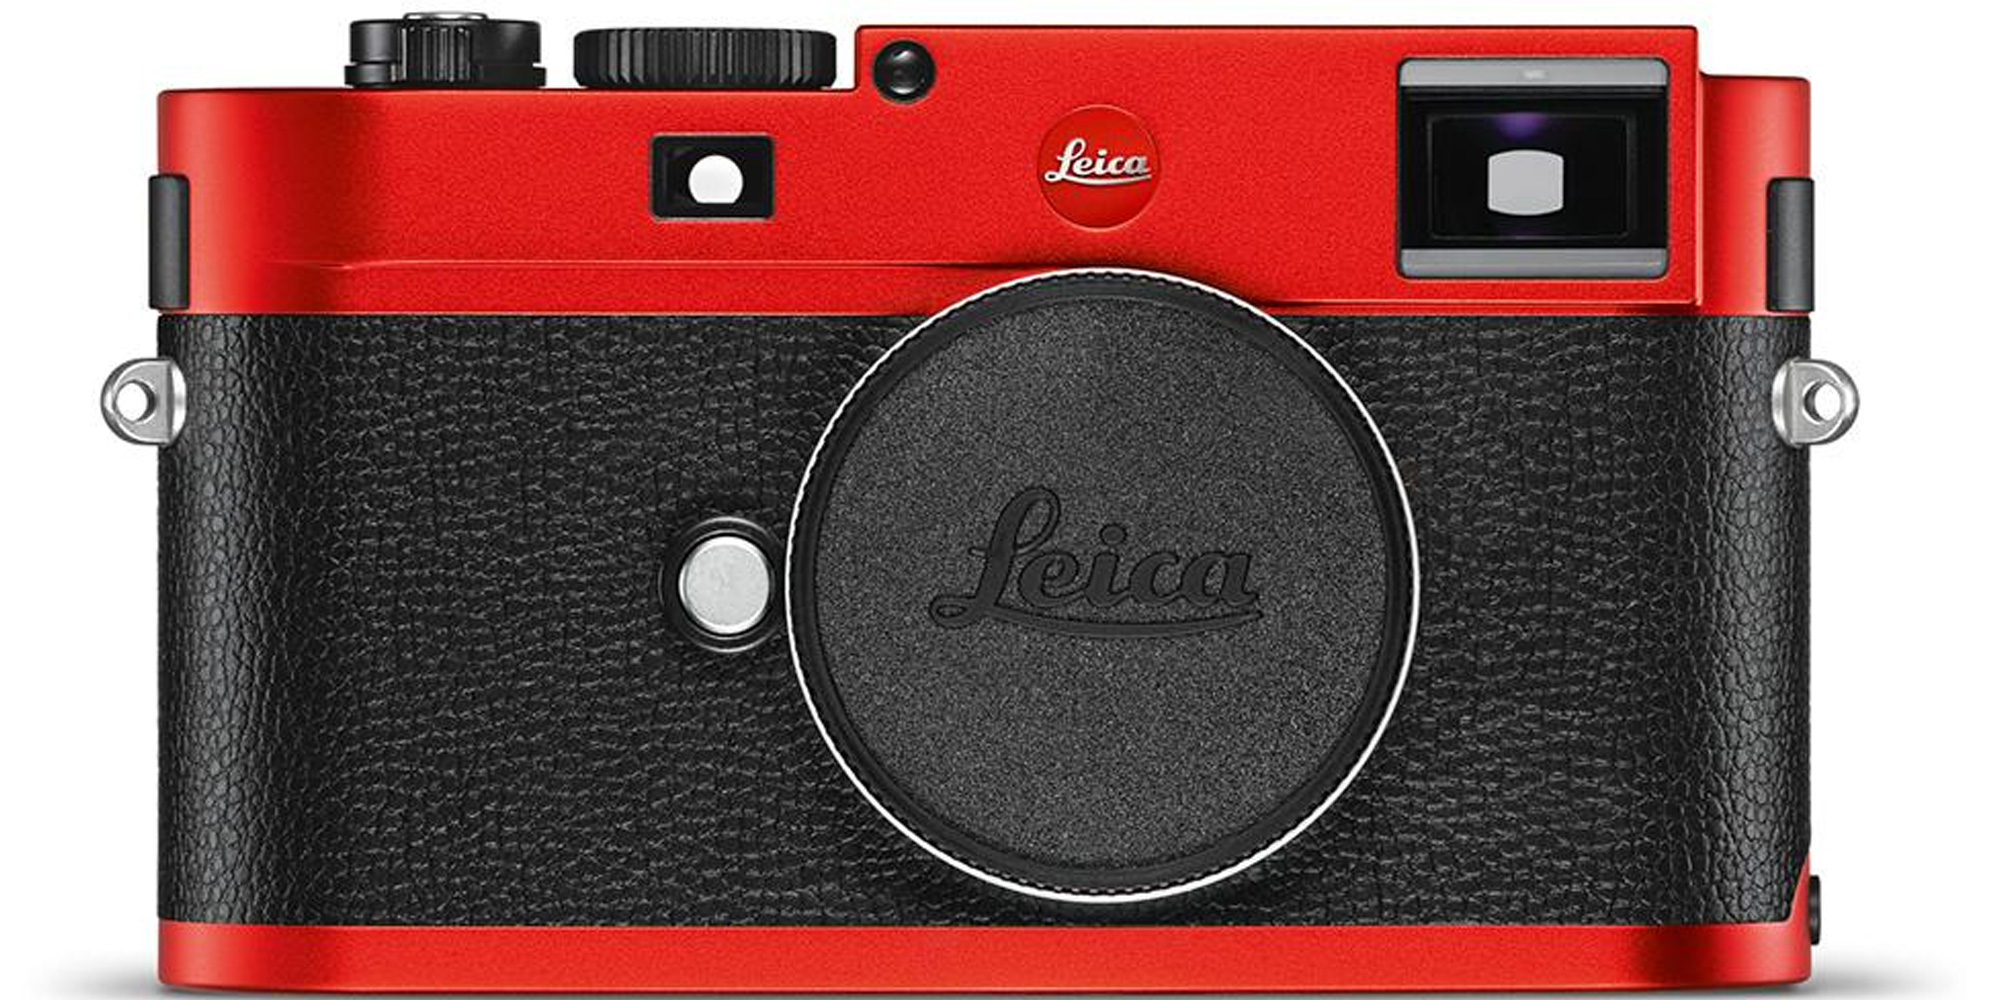 Leica announces limited edition M Typ 262 in a red anodized finish